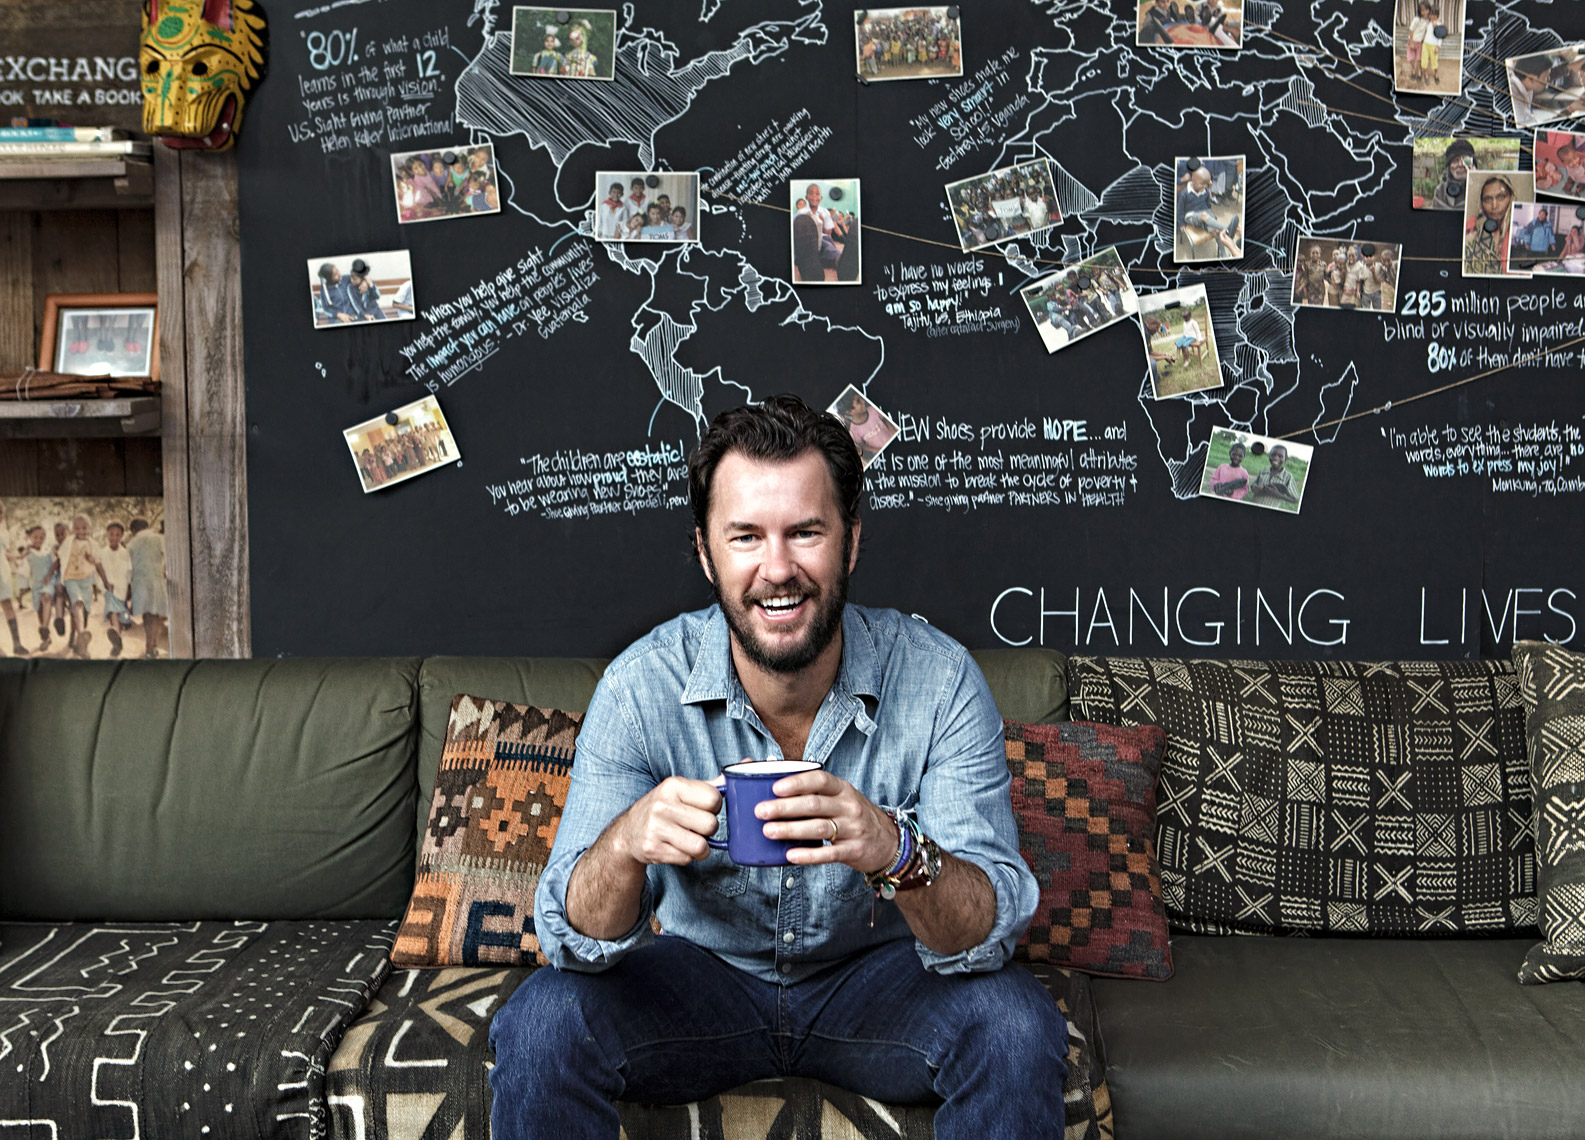 Blake Mycoskie by Scott Witter for Footwear News